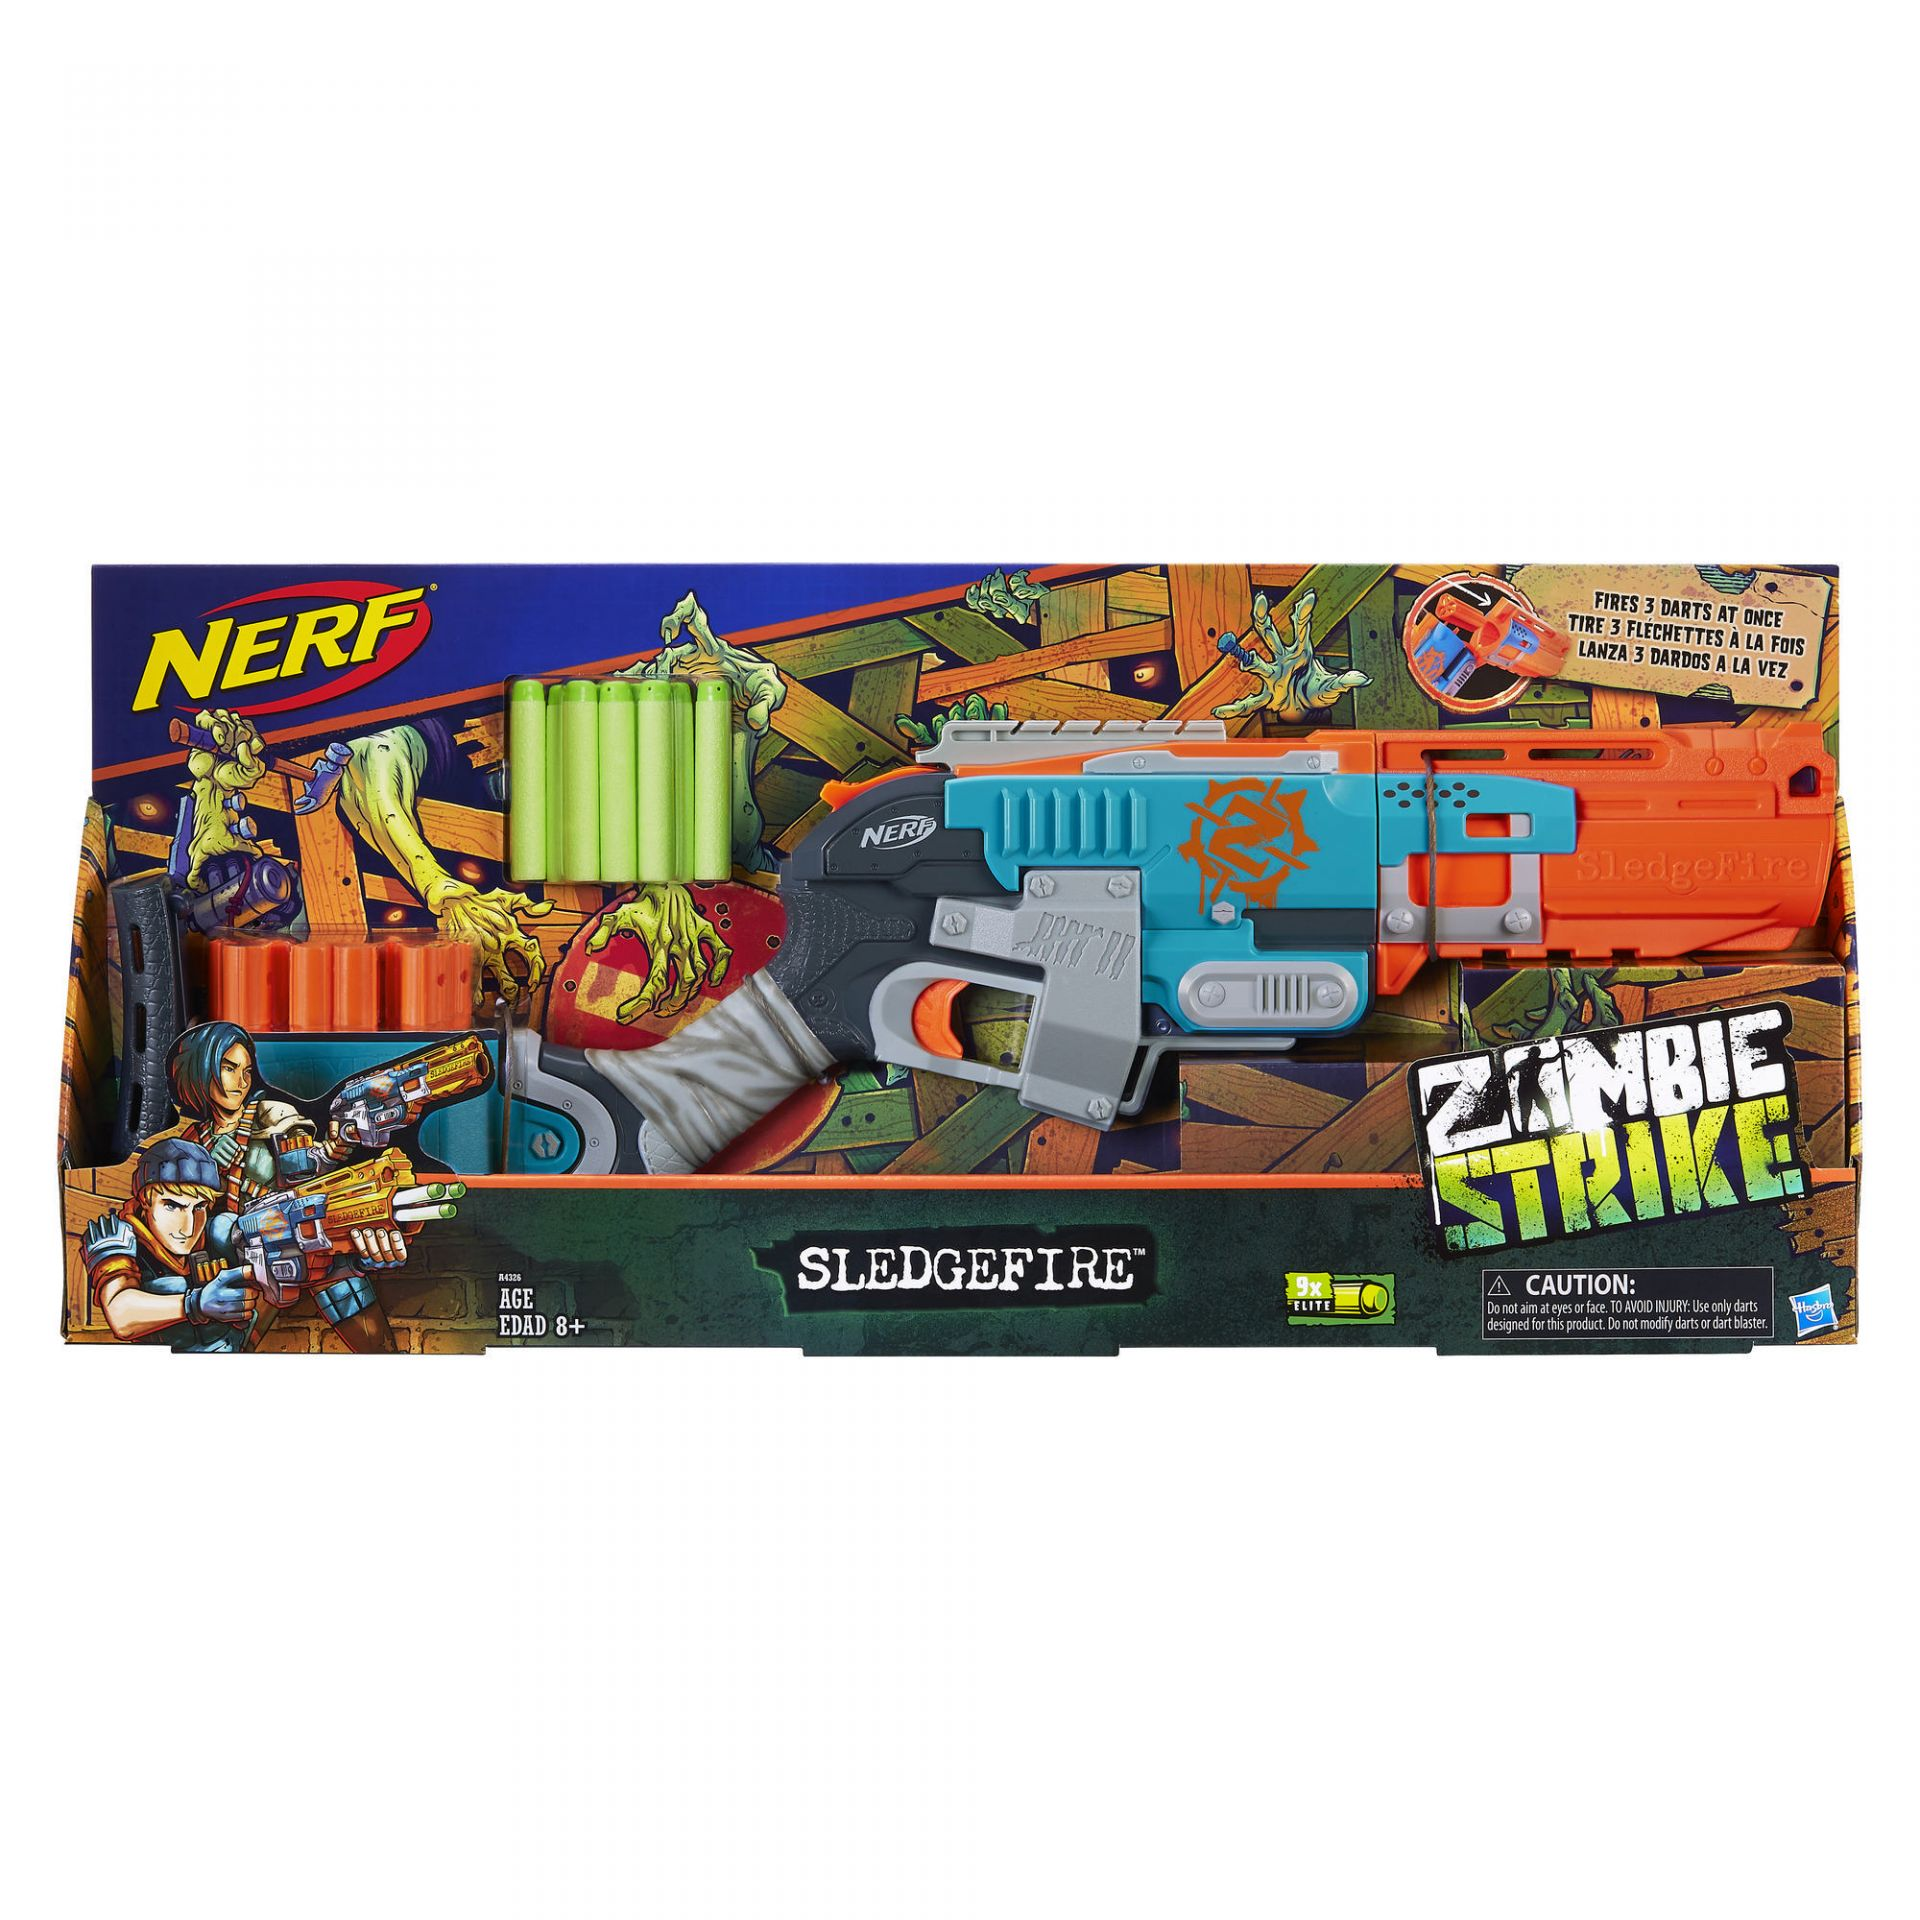 Nerf Zombie Strike Sledgefire Blaster on Furniture Made From Car Parts